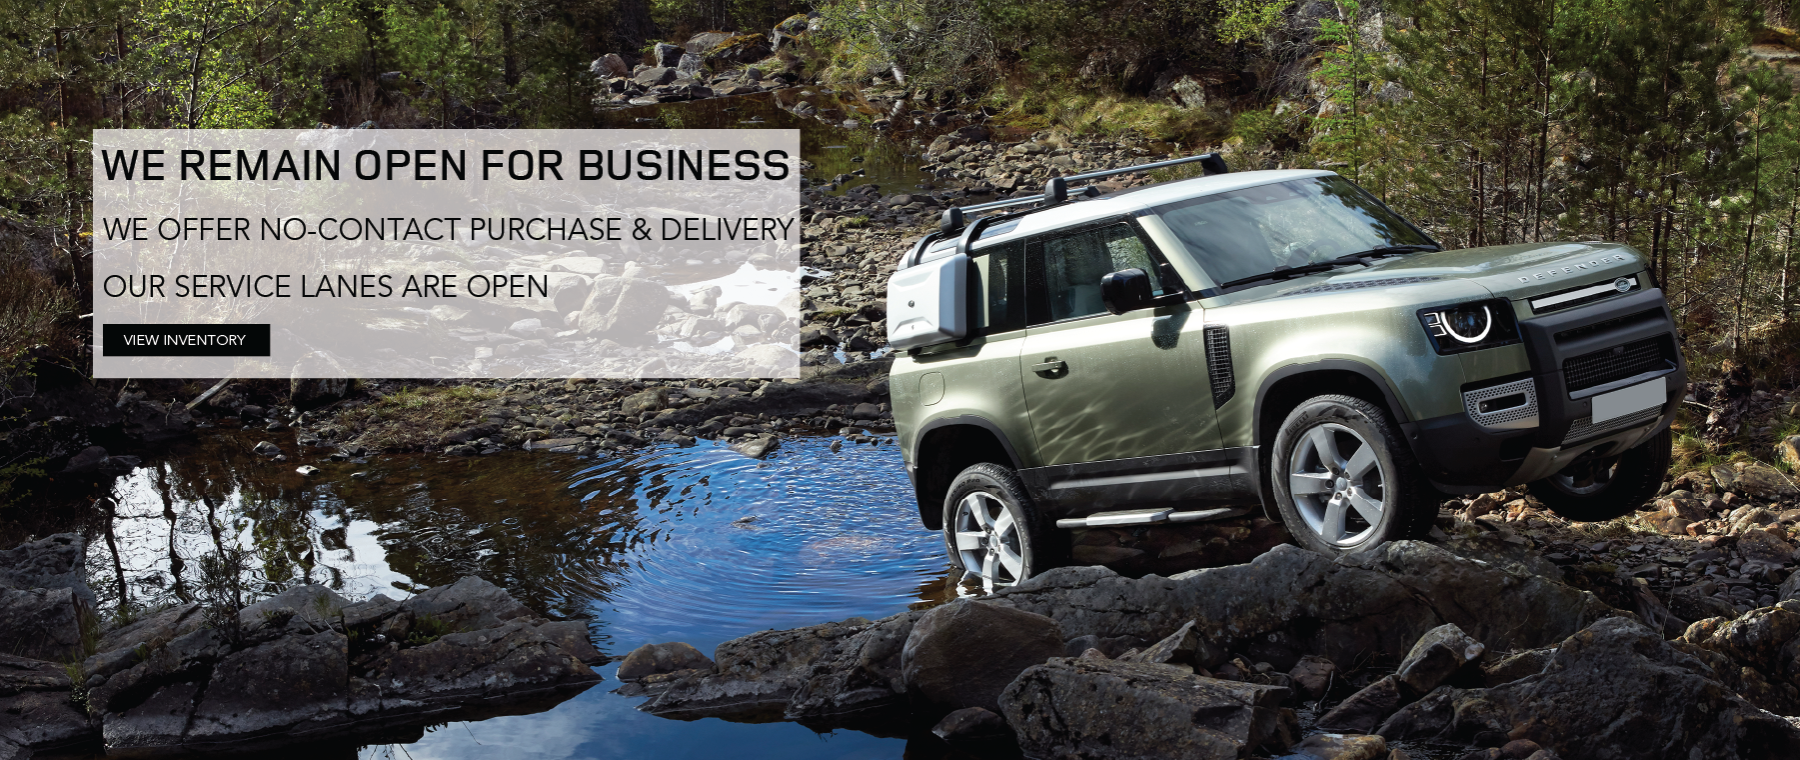 Green 2020 Land Rover Defender on rocks in middle of river. We're Open for Business. Click to view inventory.